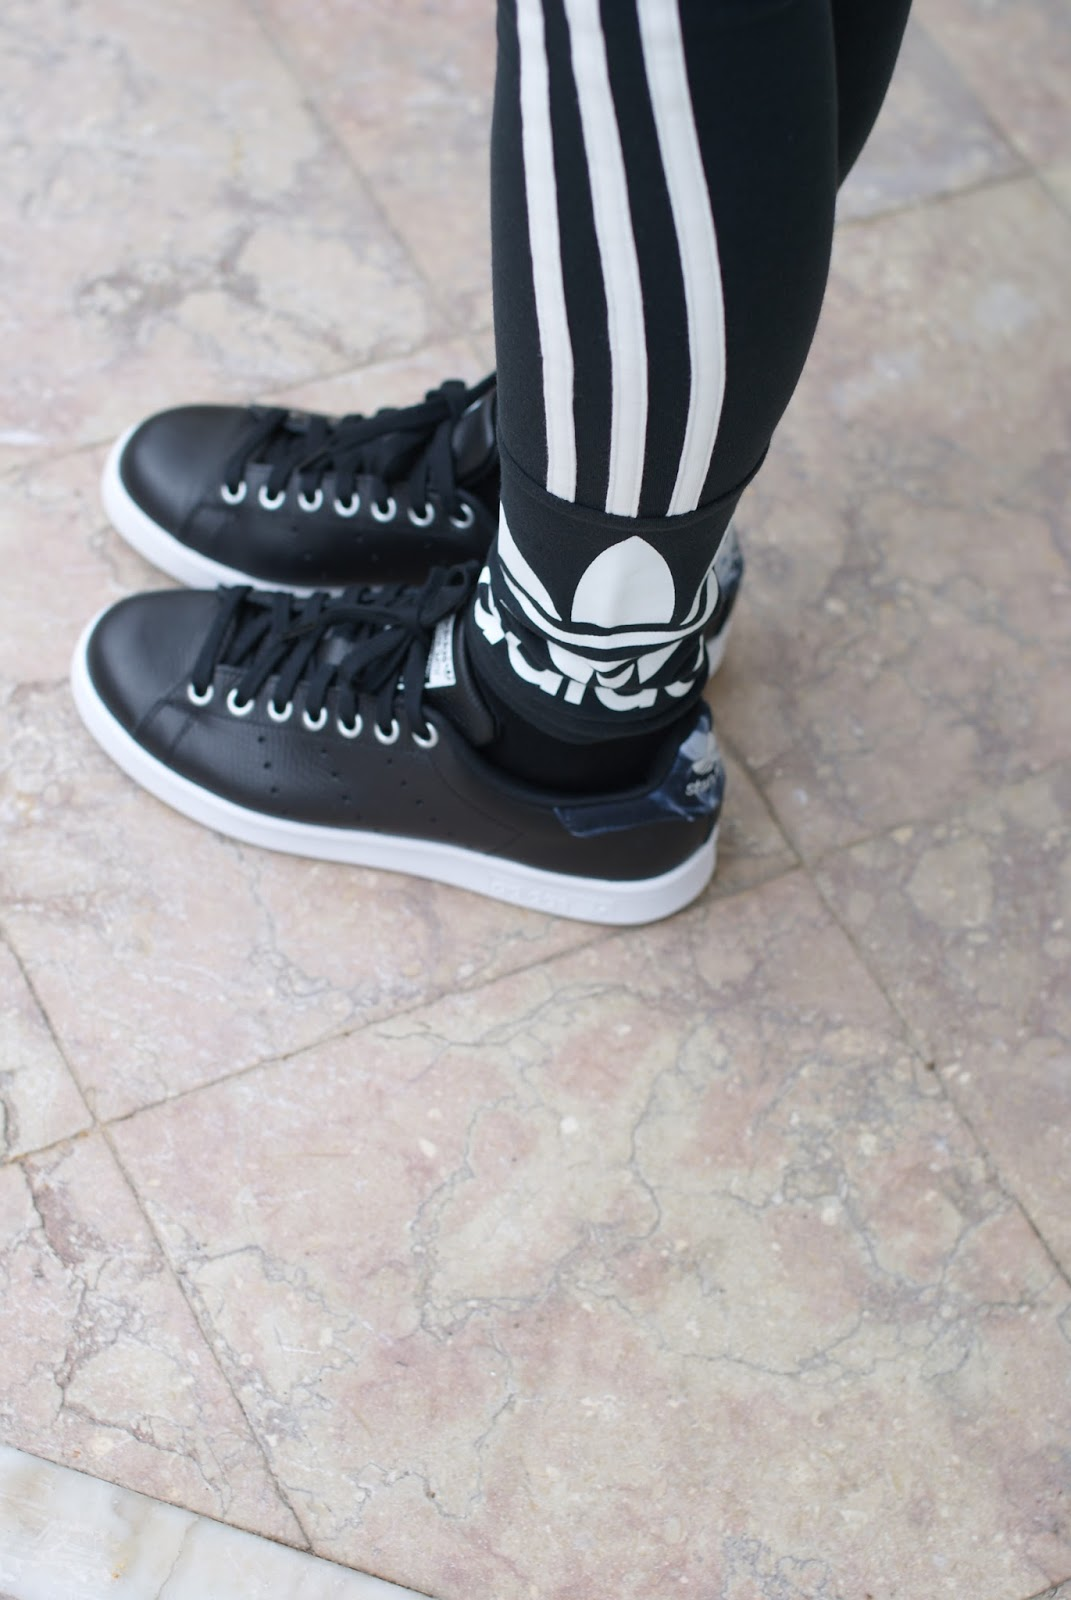 adidas stan smith rita ora sneakers in core black on Fashion and Cookies fashion blog